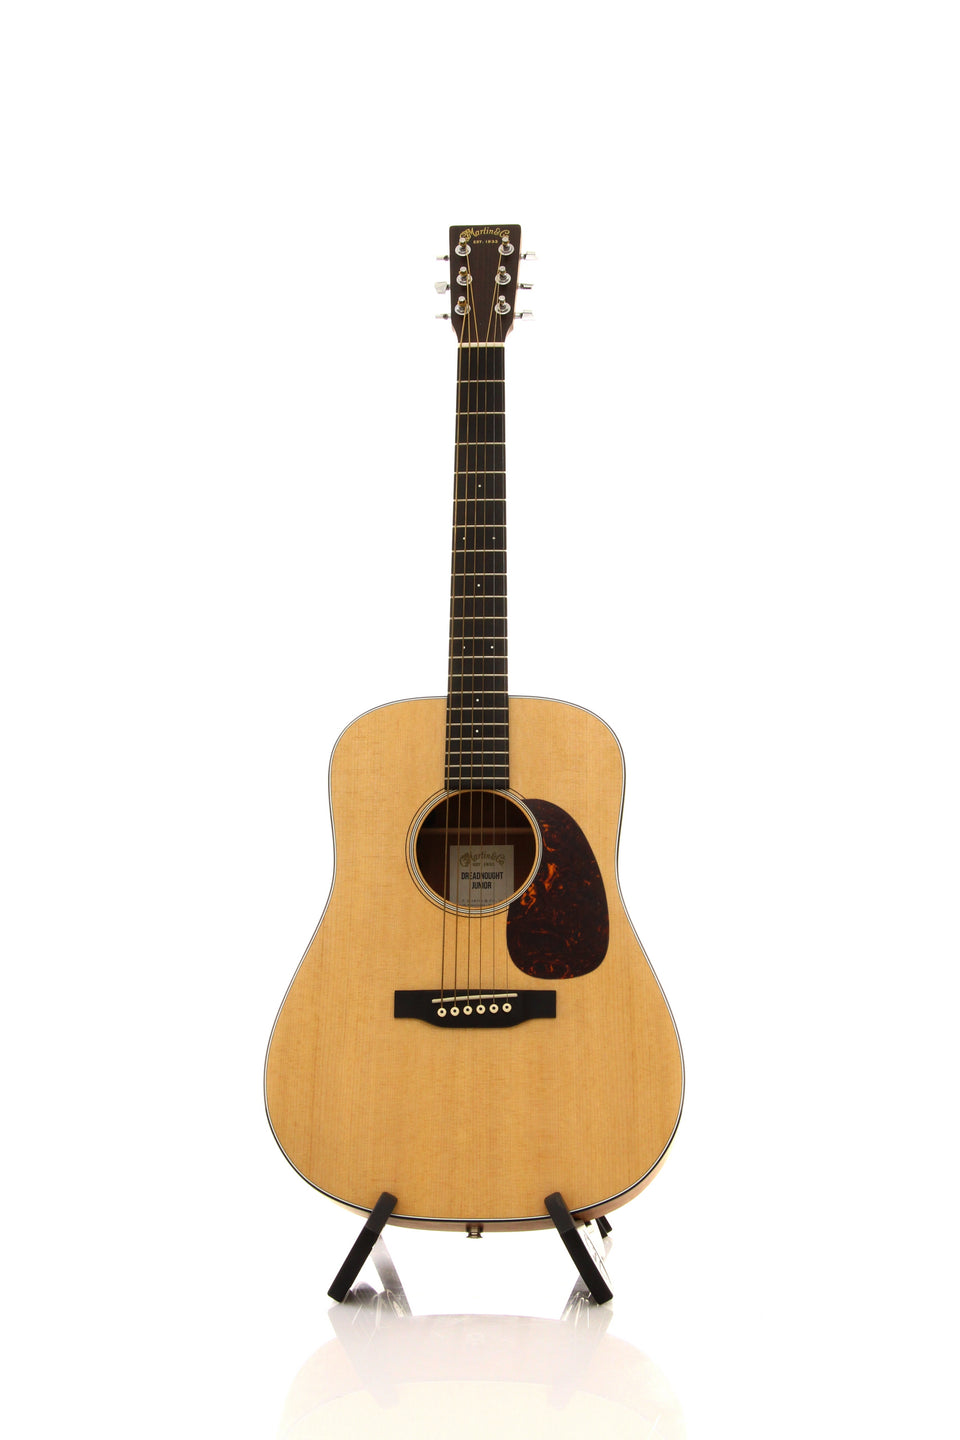 C.F. Martin Dreadnought Junior Acoustic Electric Guitar